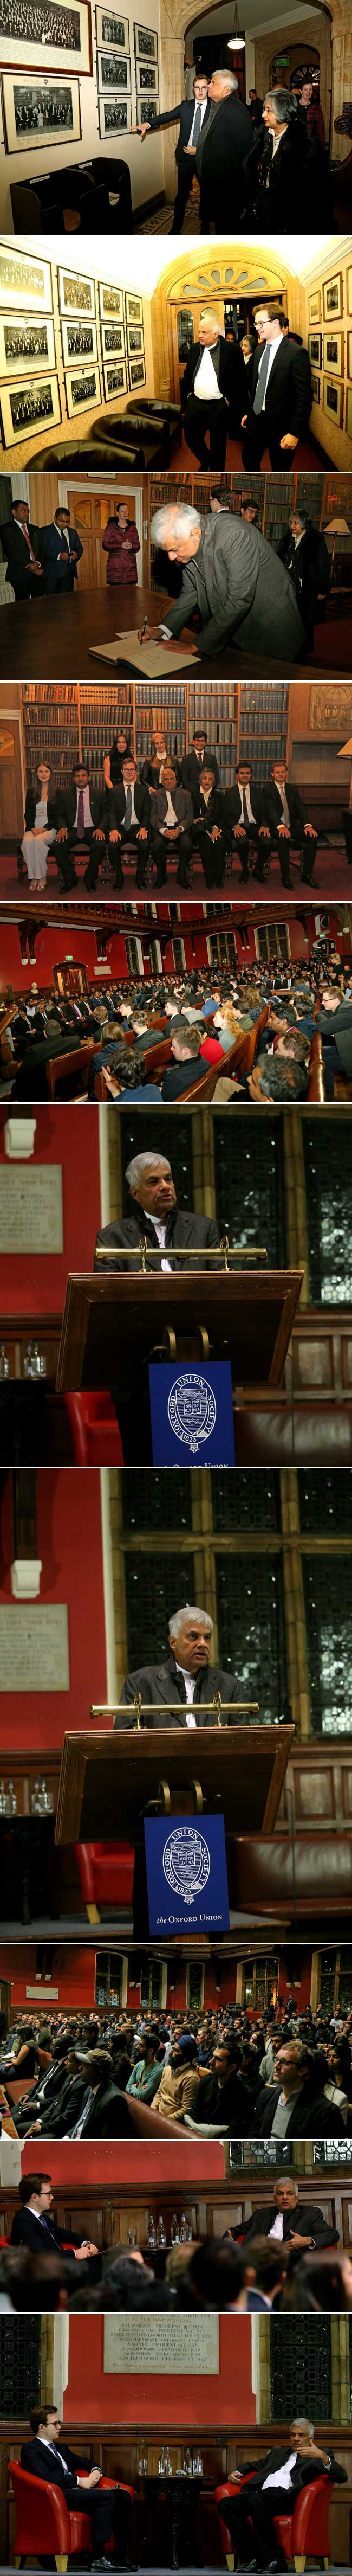 PM at University of Oxford…